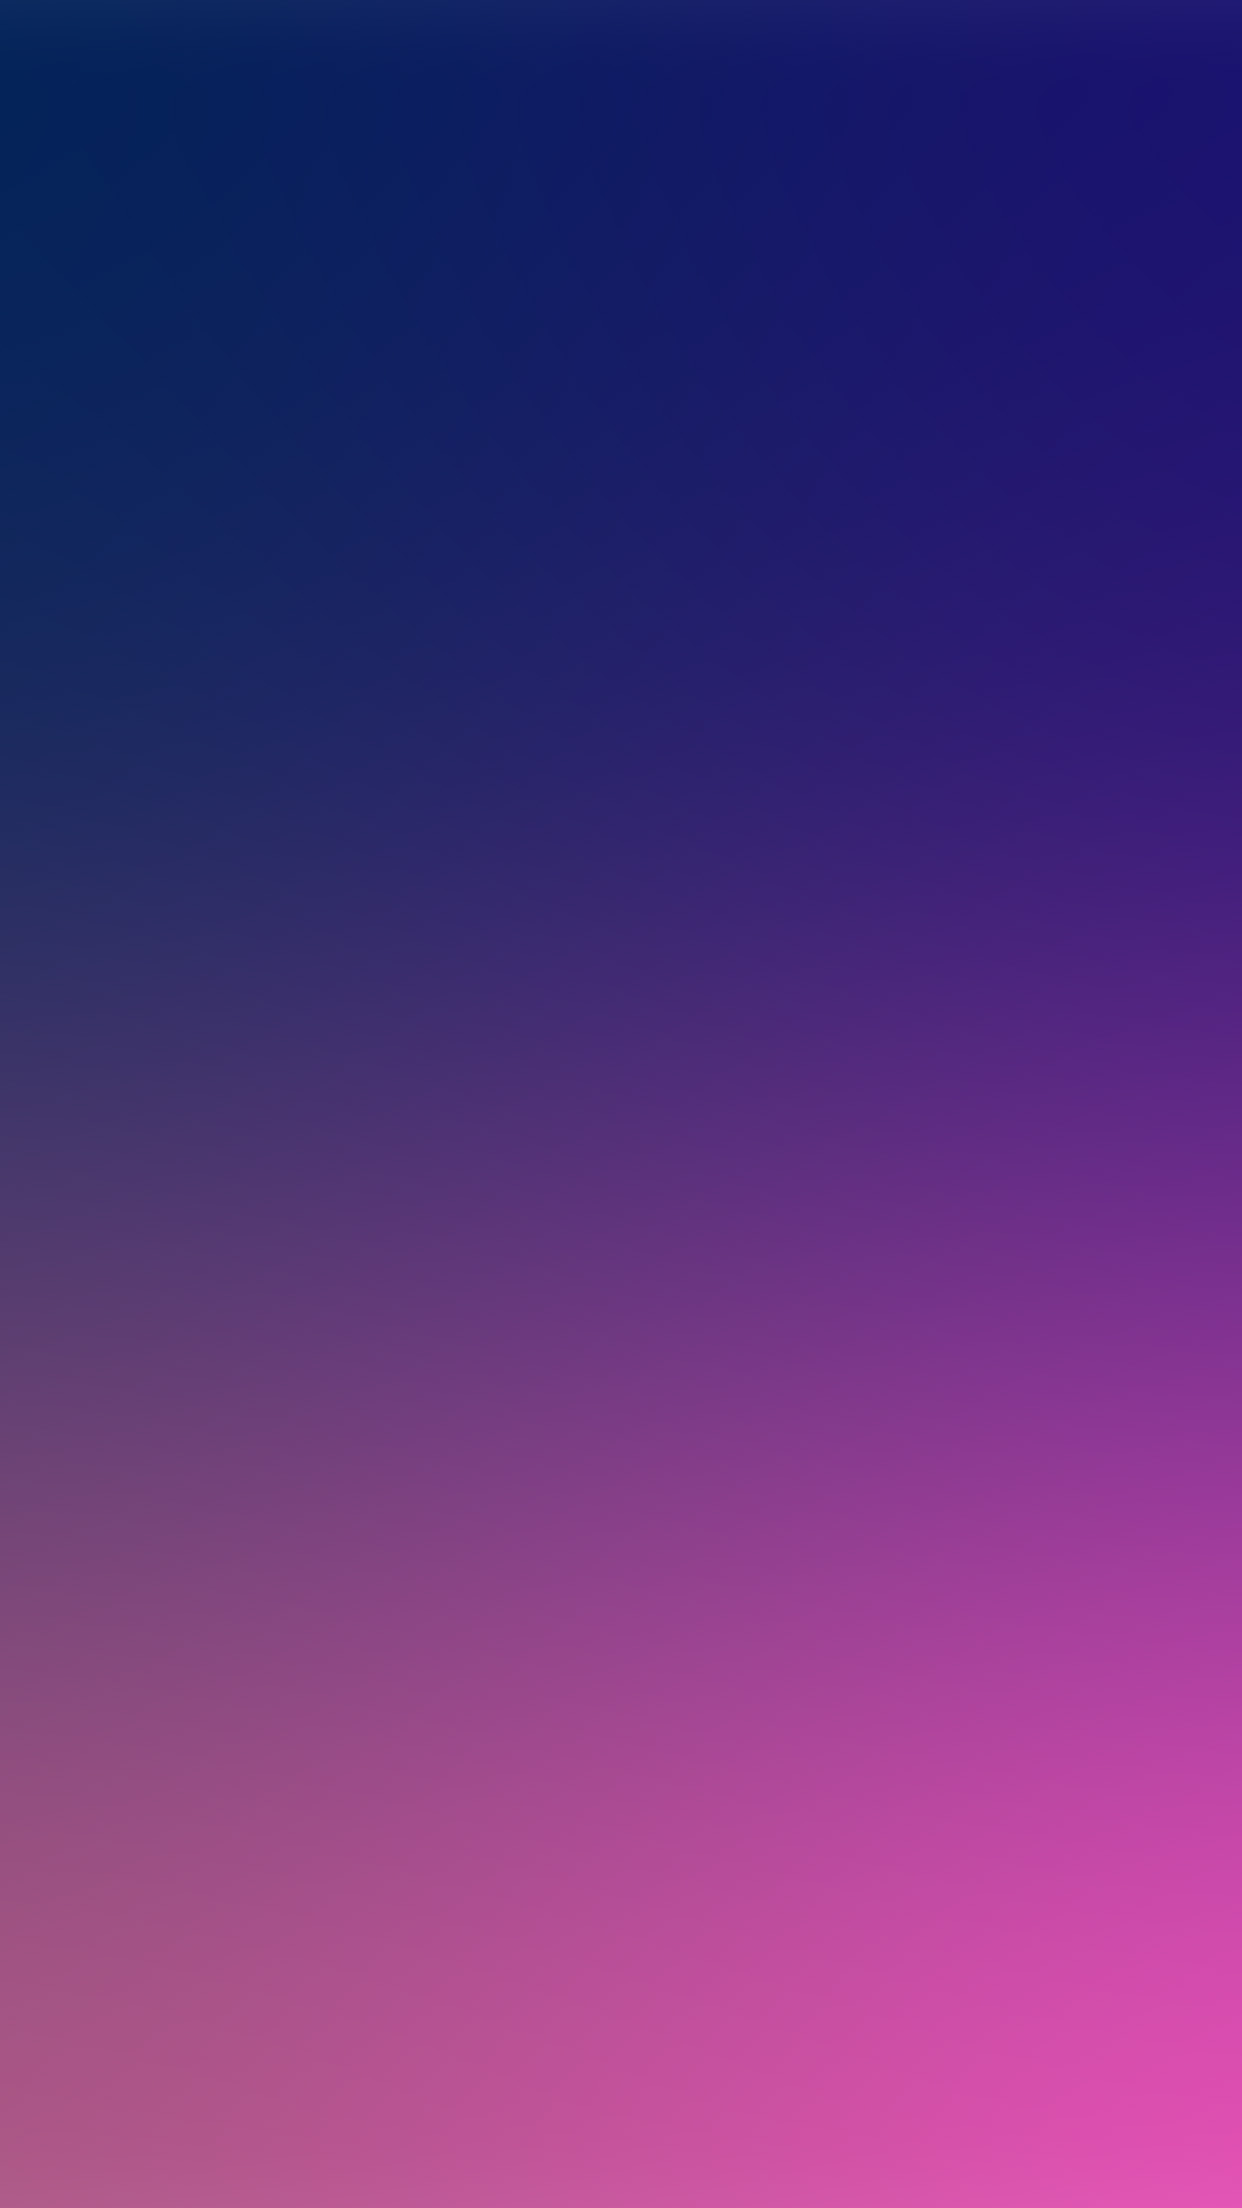 iphone7papers | iphone7 wallpaper | sm27-blue-purple-color-blur